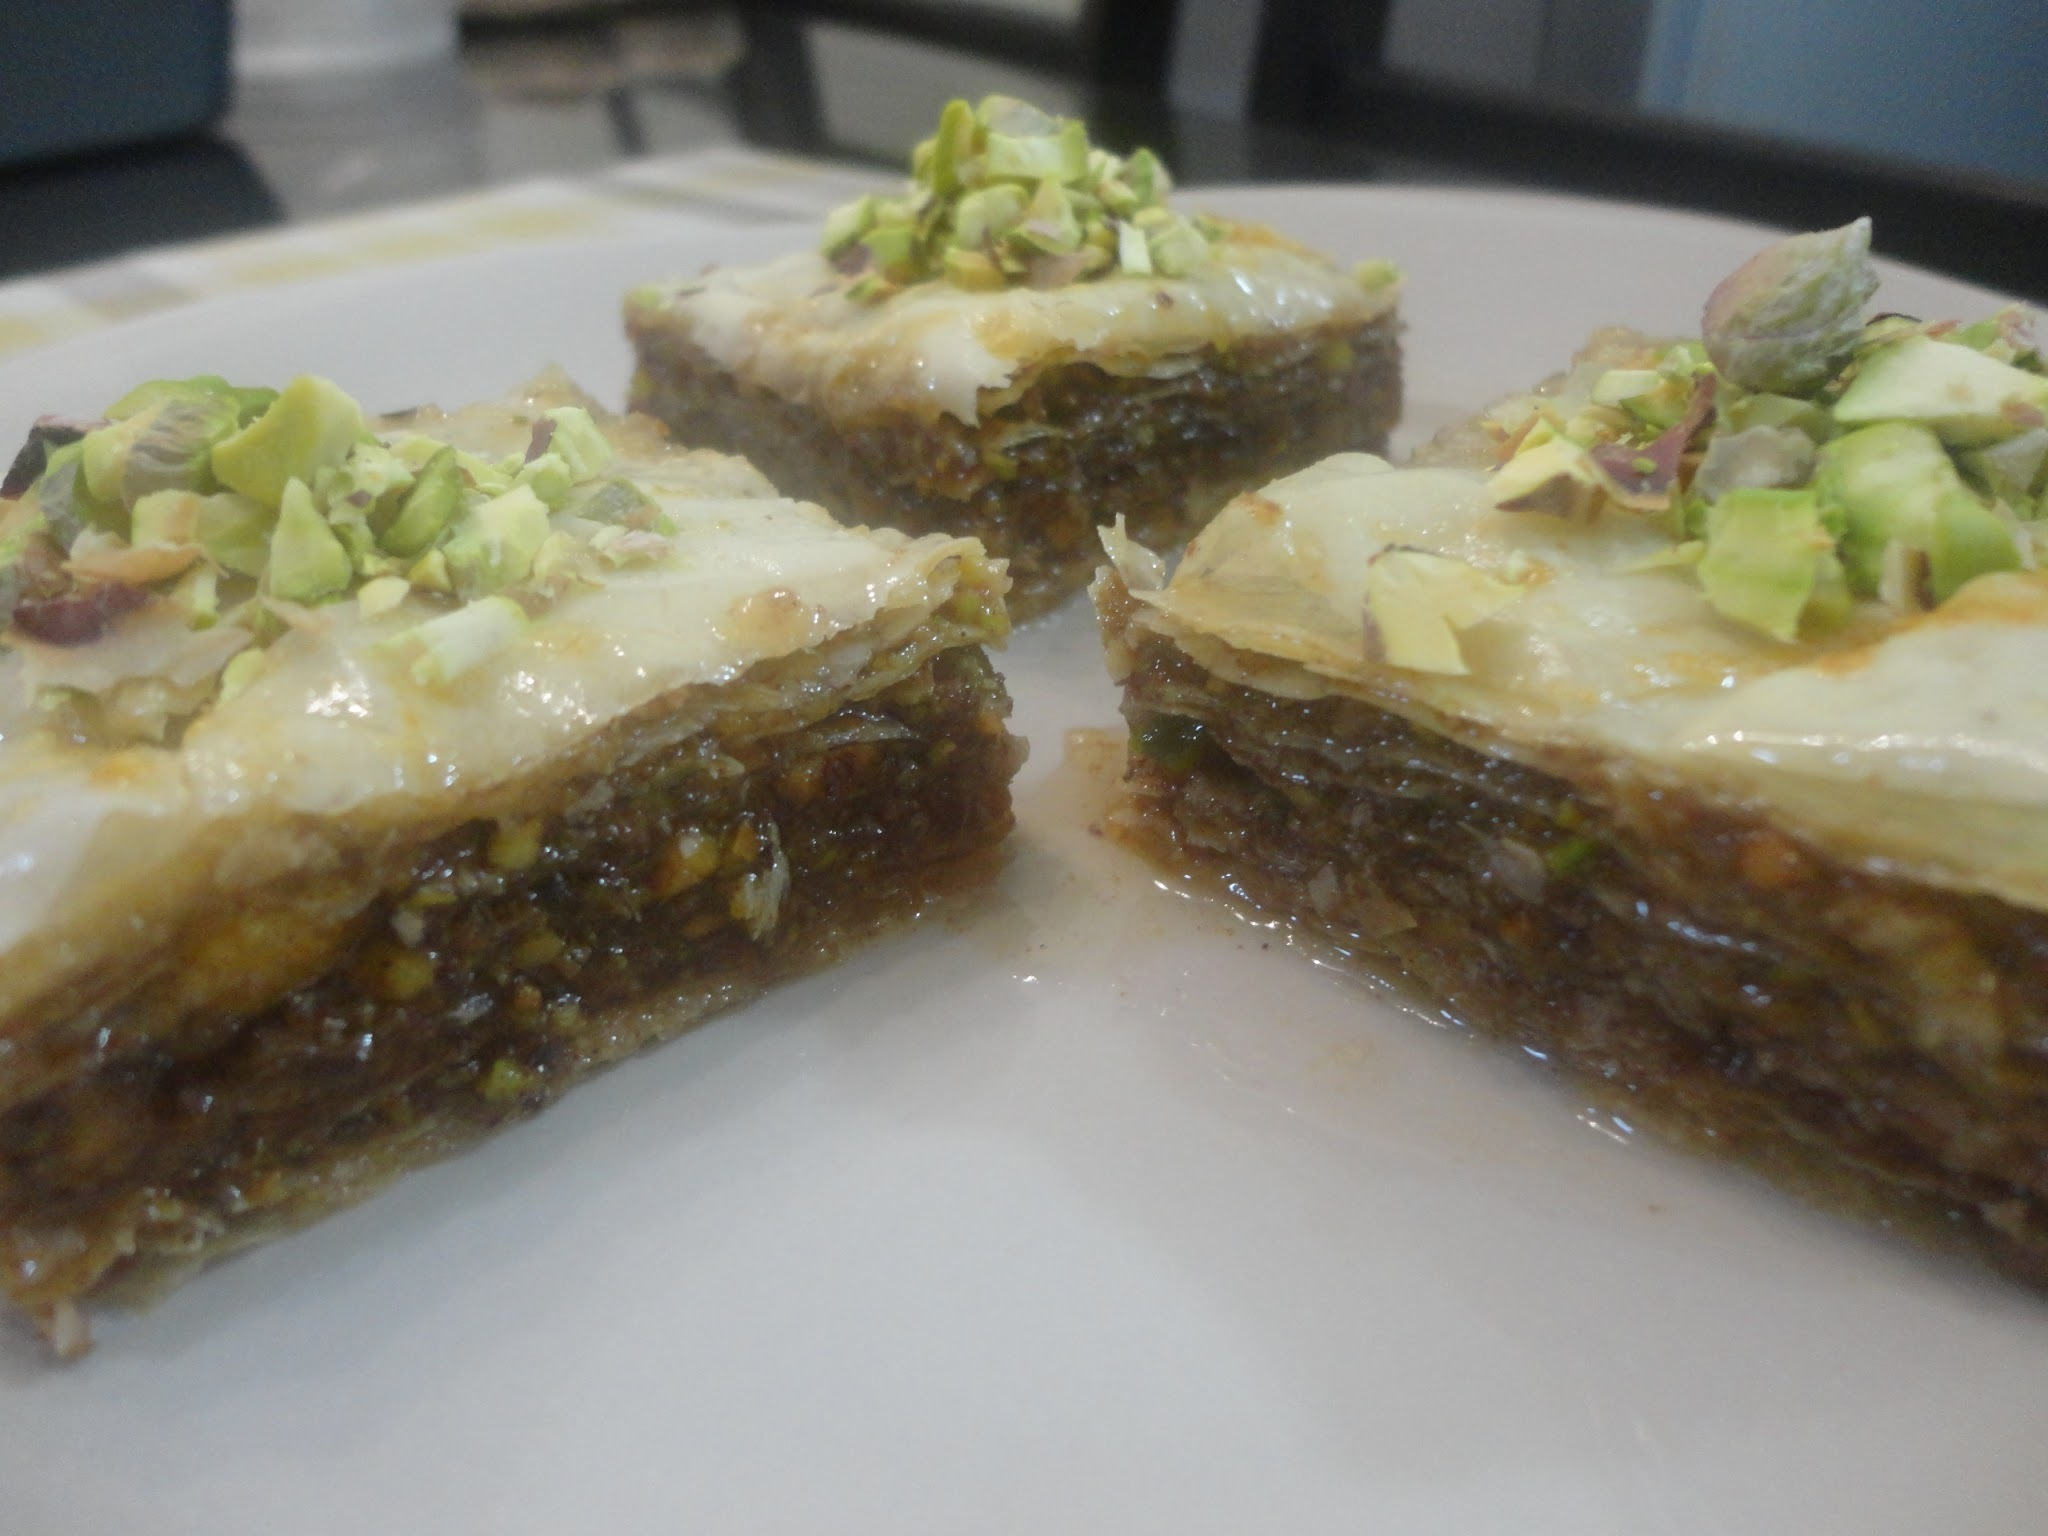 Finally, my PISTACHIO BAKLAVA